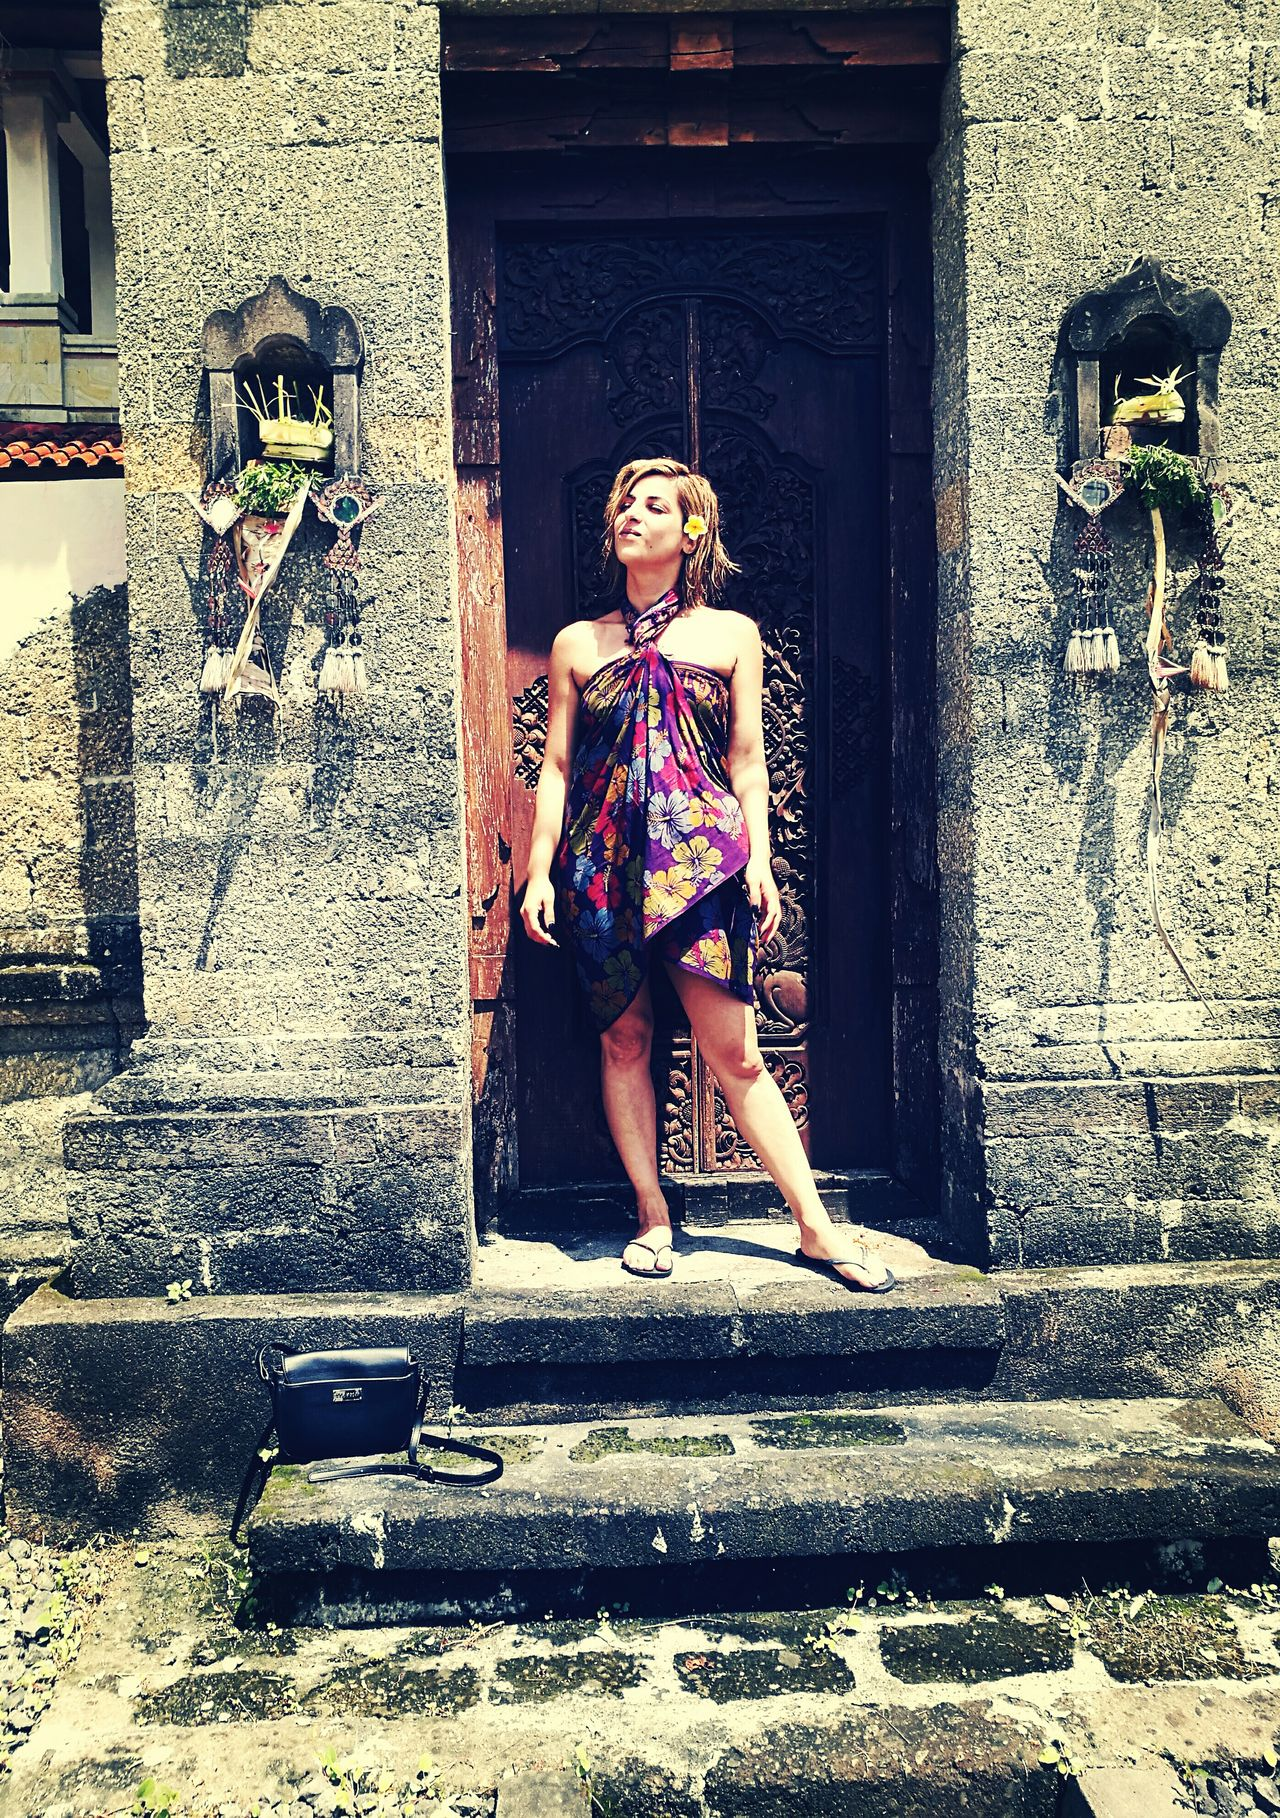 Women Around The World Sister Portrait Of A Woman Women Of EyeEm Travel Photography People Photography Bali, Doorsworldwide Doors Lover Holiday Trip Holiday Blues Love ♥ HuaweiP9